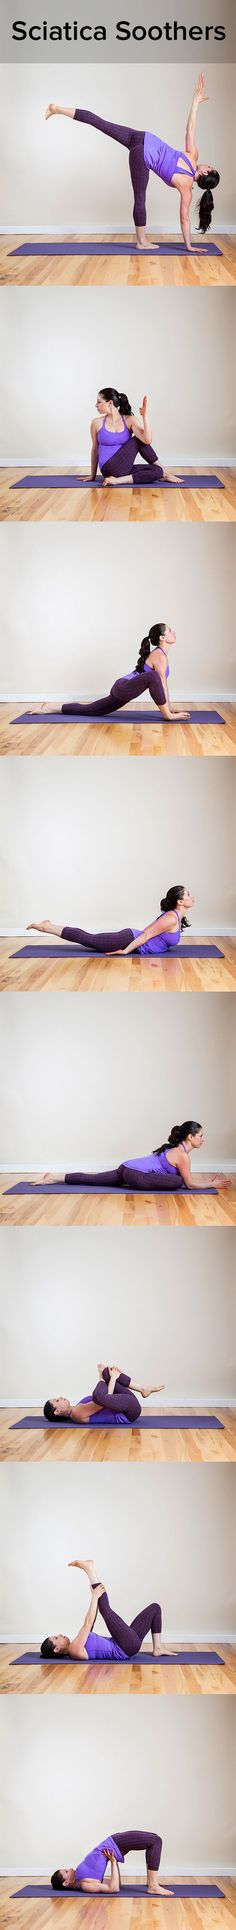 Results of a study show the positive effects of yoga on the quality of life in patients with Fibromy